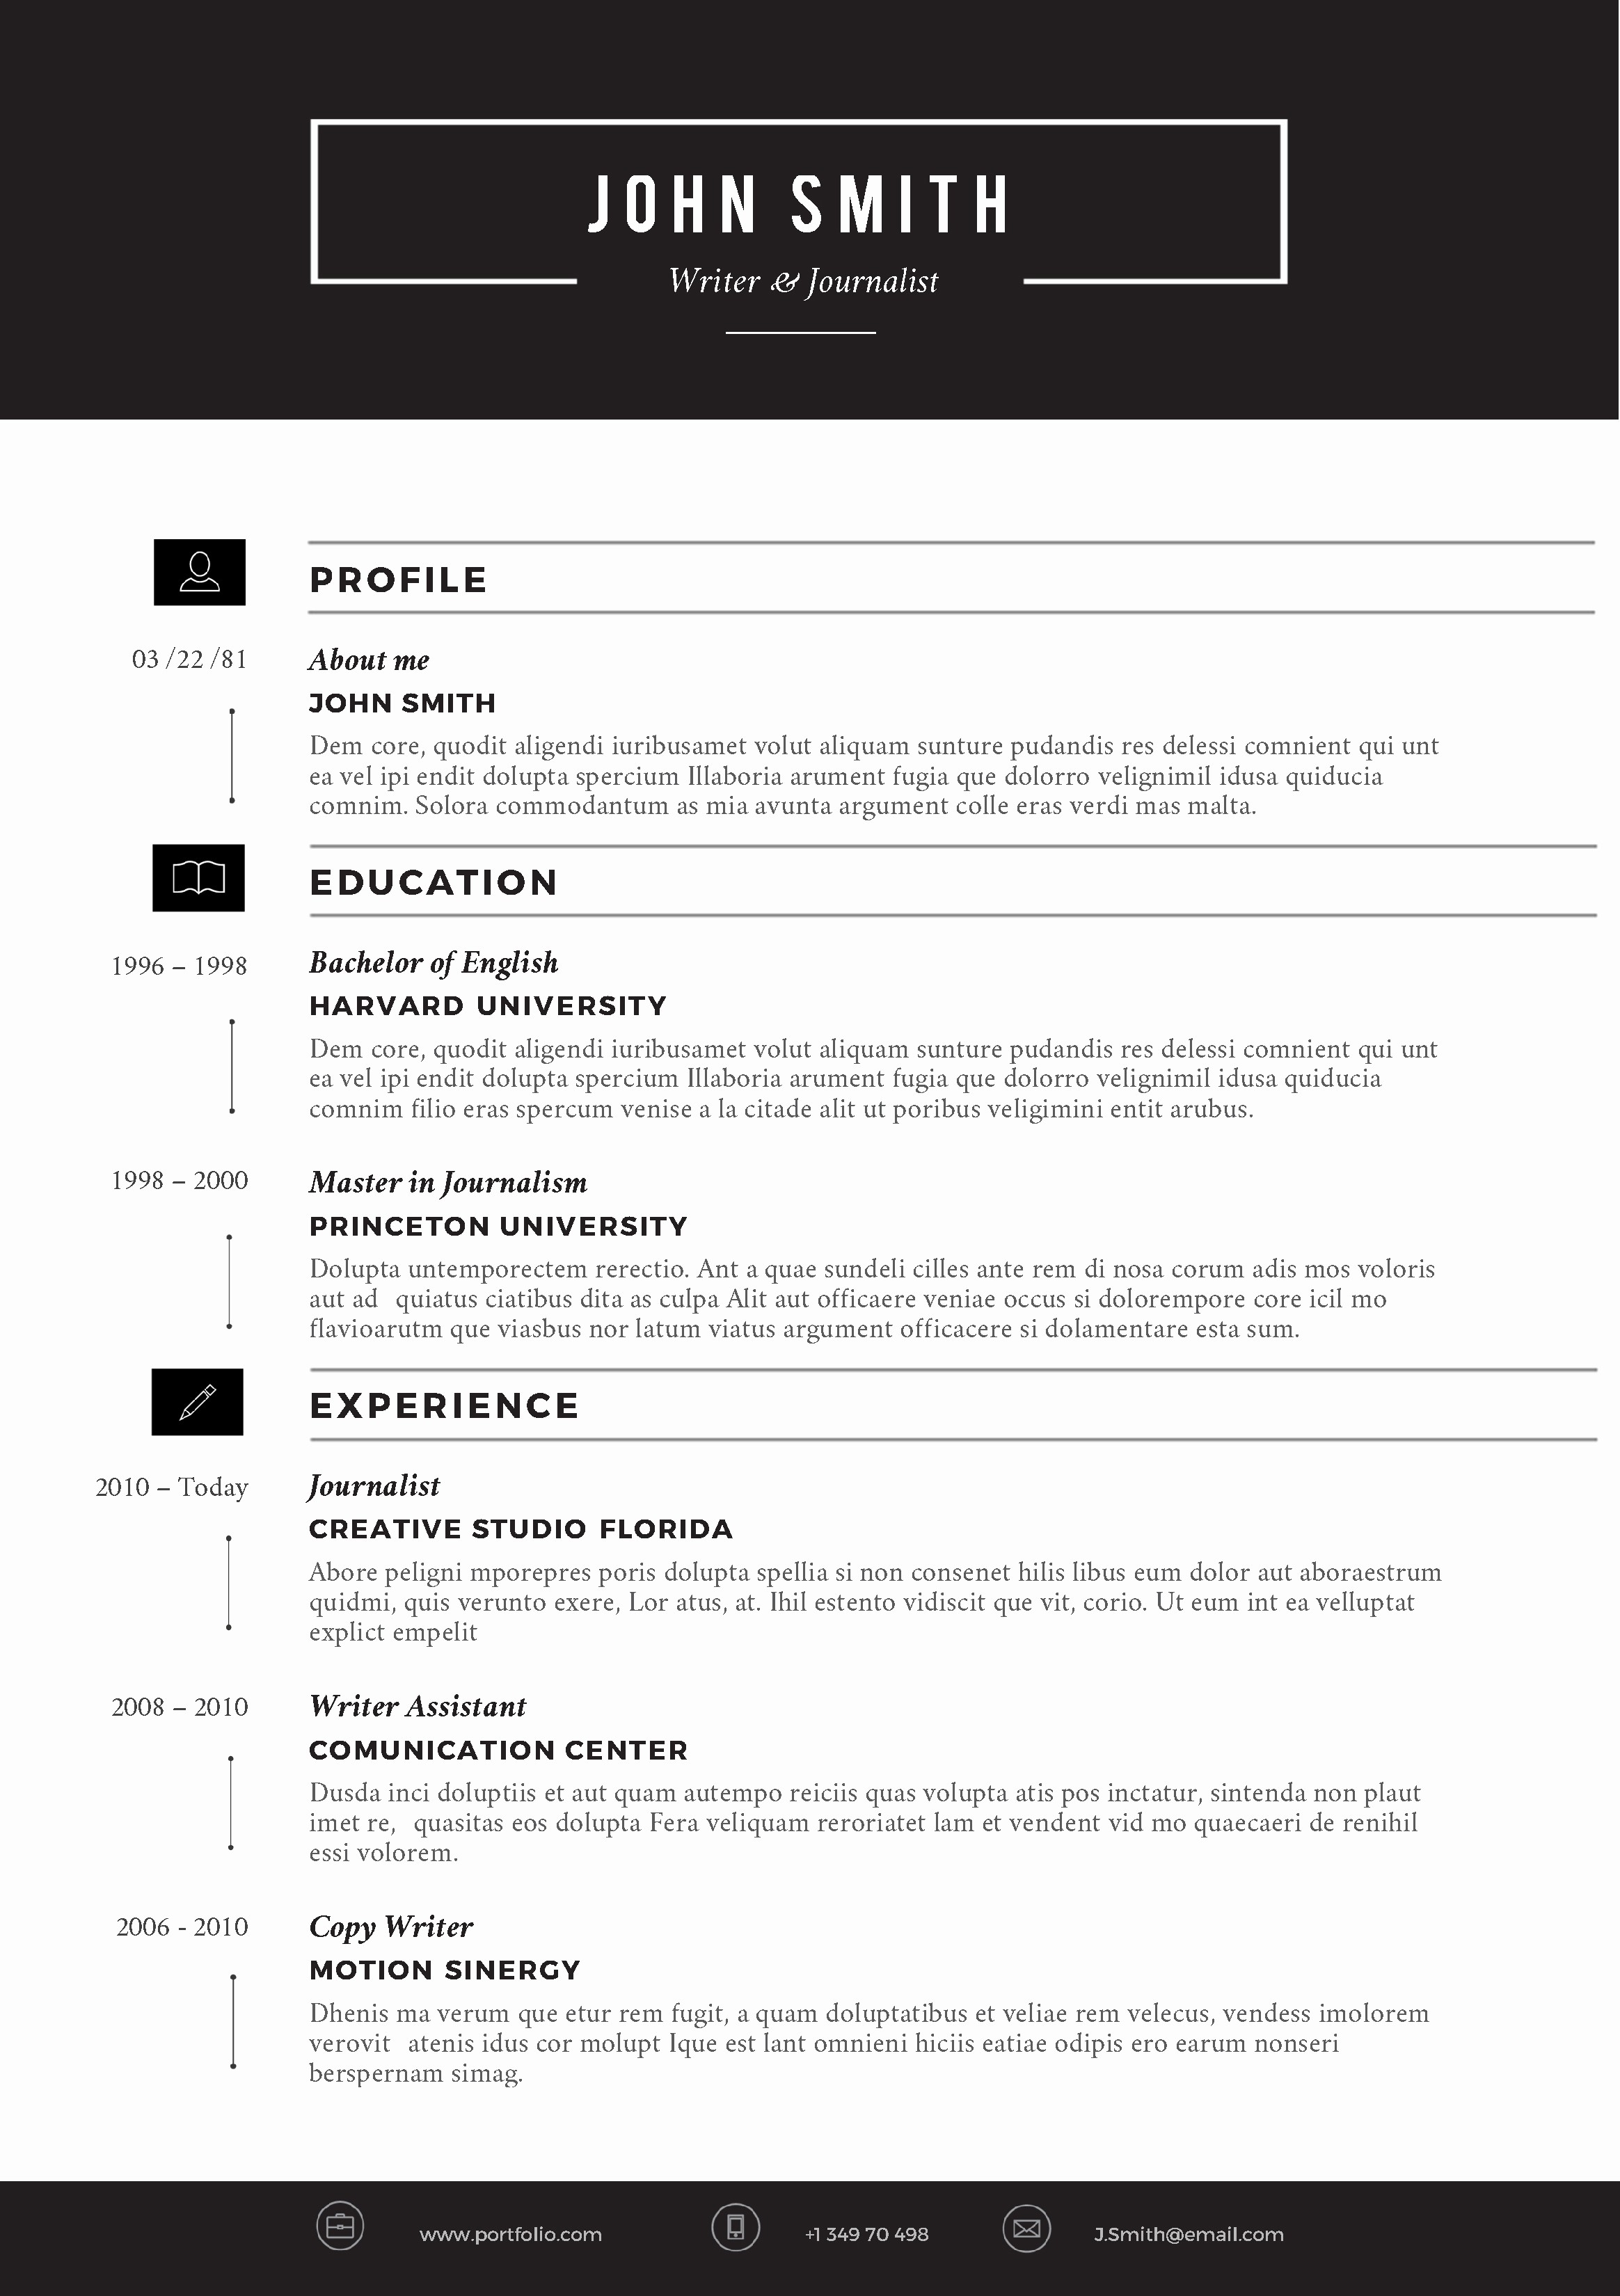 Microsoft Office Word Templates Resume Inspirational Cvfolio Best 10 Resume Templates for Microsoft Word